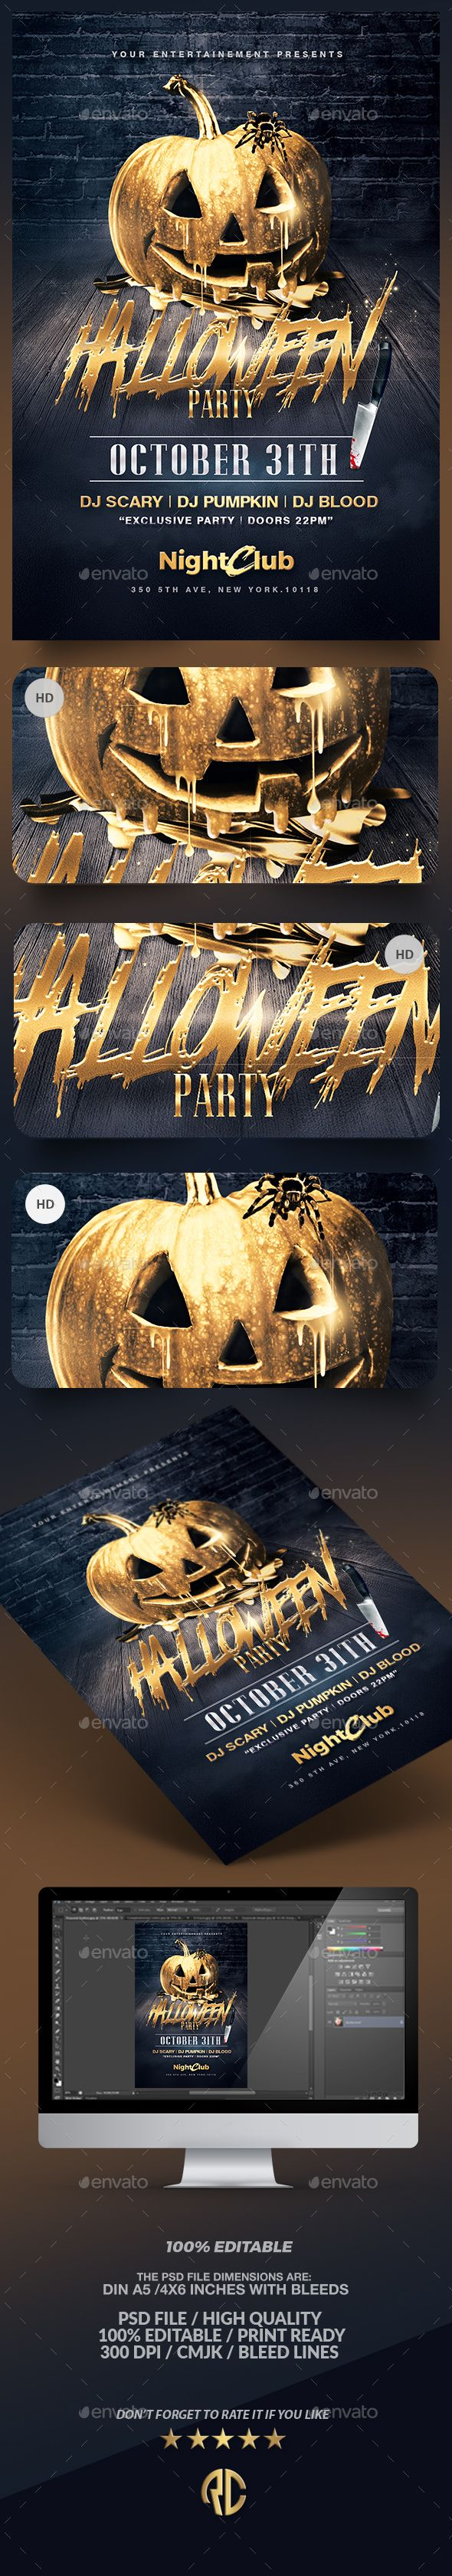 Halloween Party | Gold Pumpkin Flyer Template PSD